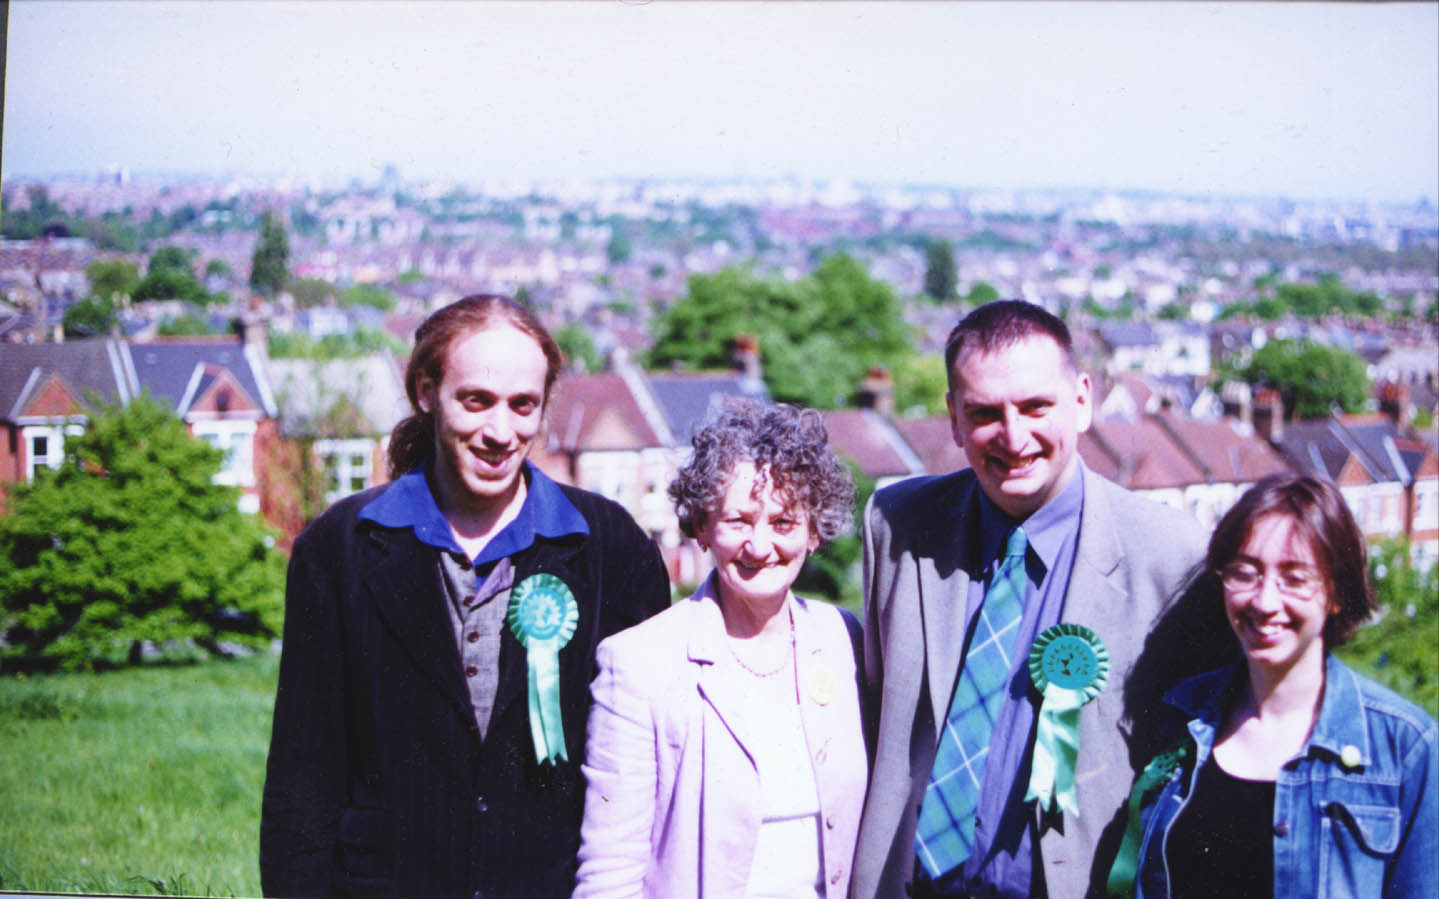 Störm Poorun, Jenny Jones, Darren Johnson, Ruth Jenkins on Dawson's Hill, Spring 2002